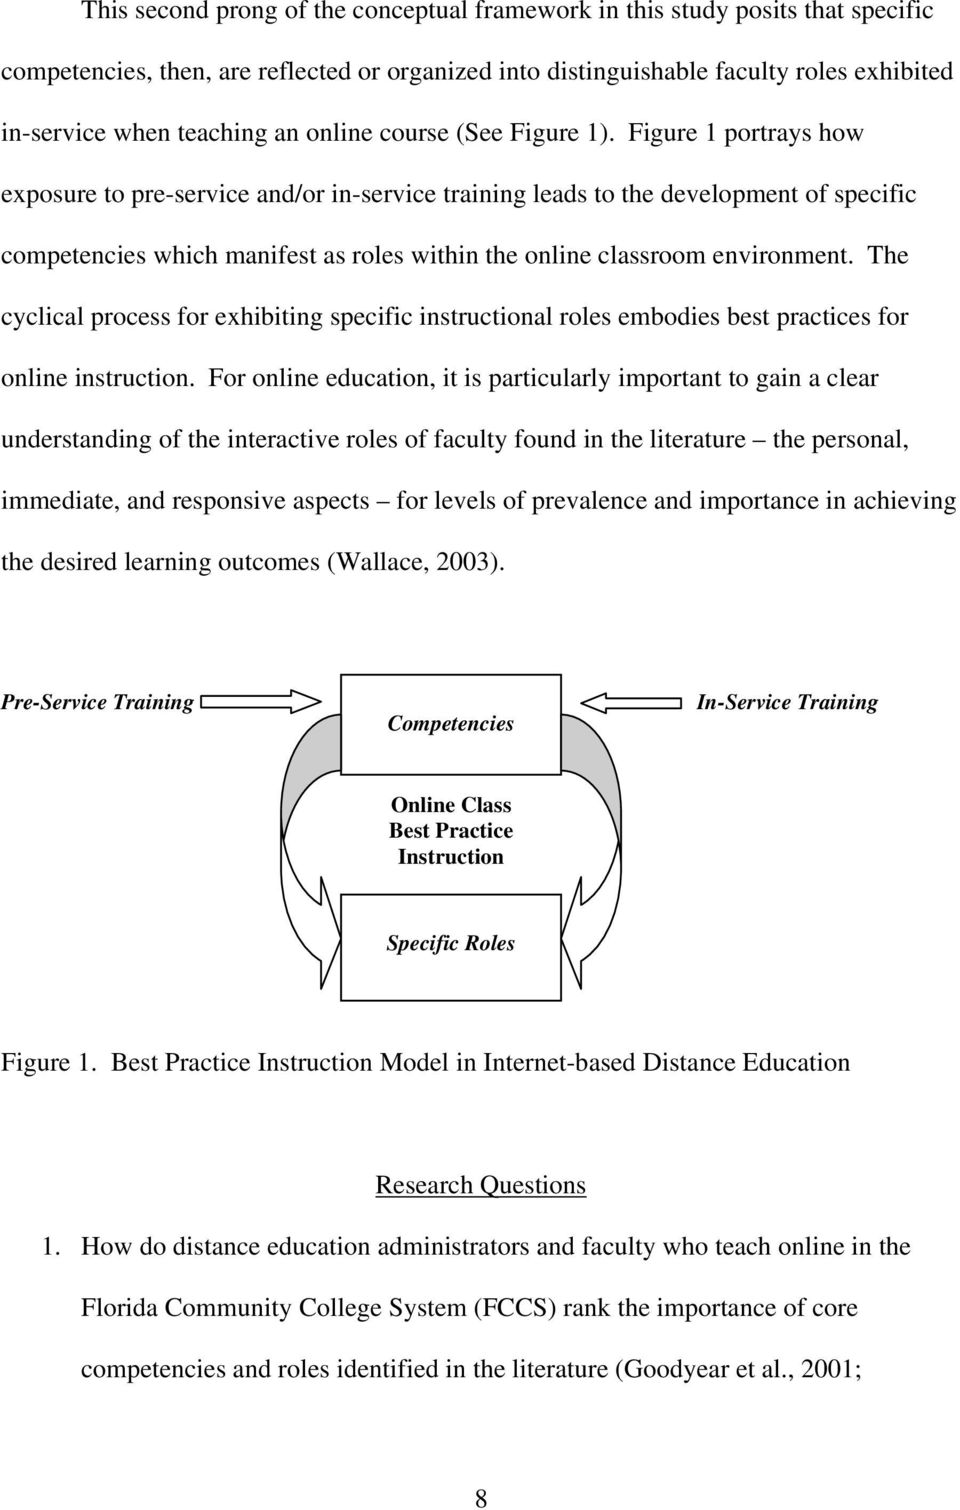 Figure 1 portrays how exposure to pre-service and/or in-service training leads to the development of specific competencies which manifest as roles within the online classroom environment.